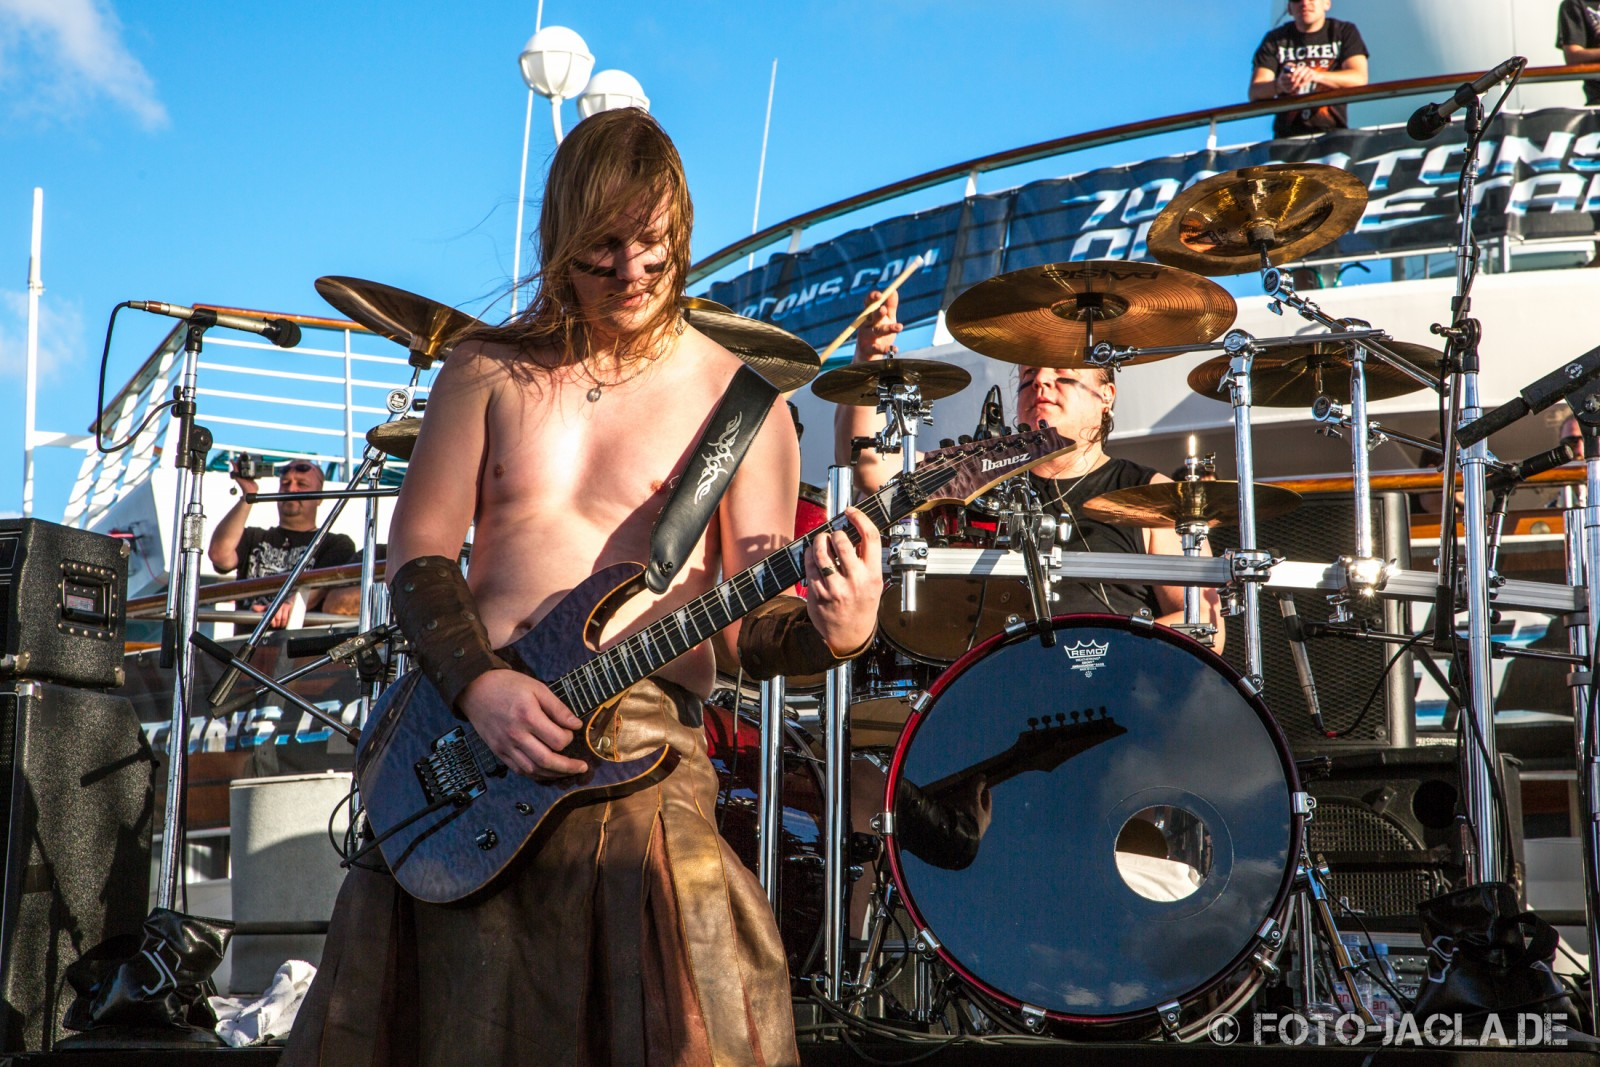 70000 Tons of Metal 2013 ::. Ensiferum ::. http://www.foto-jagla.de